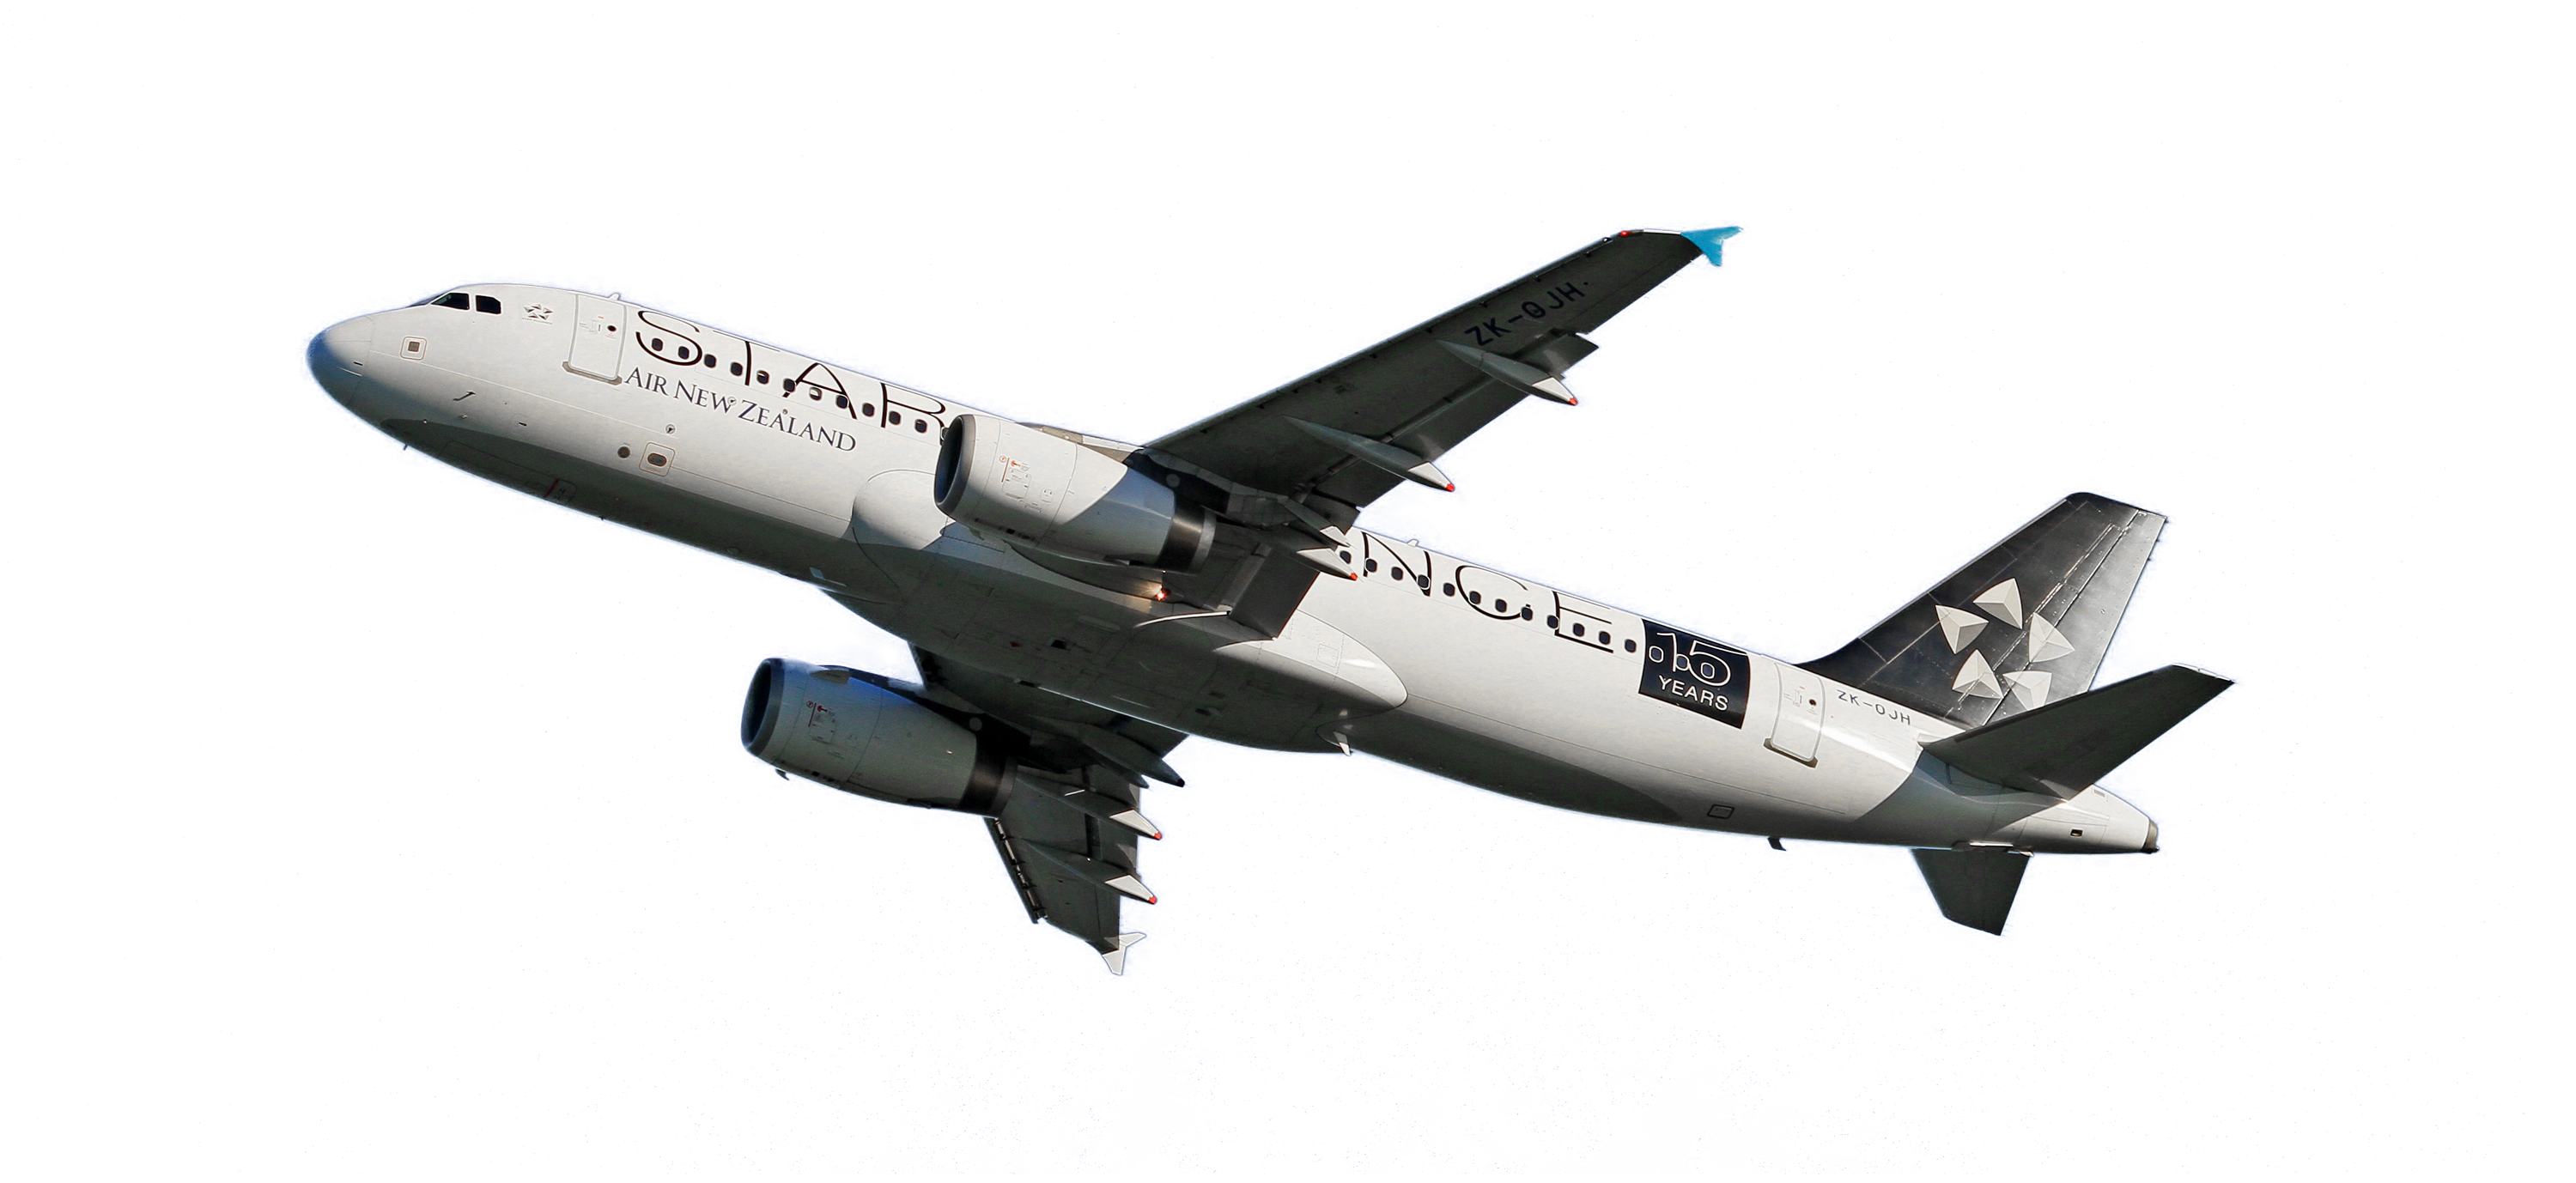 Jet clipart takeoff. Airplane taking off png